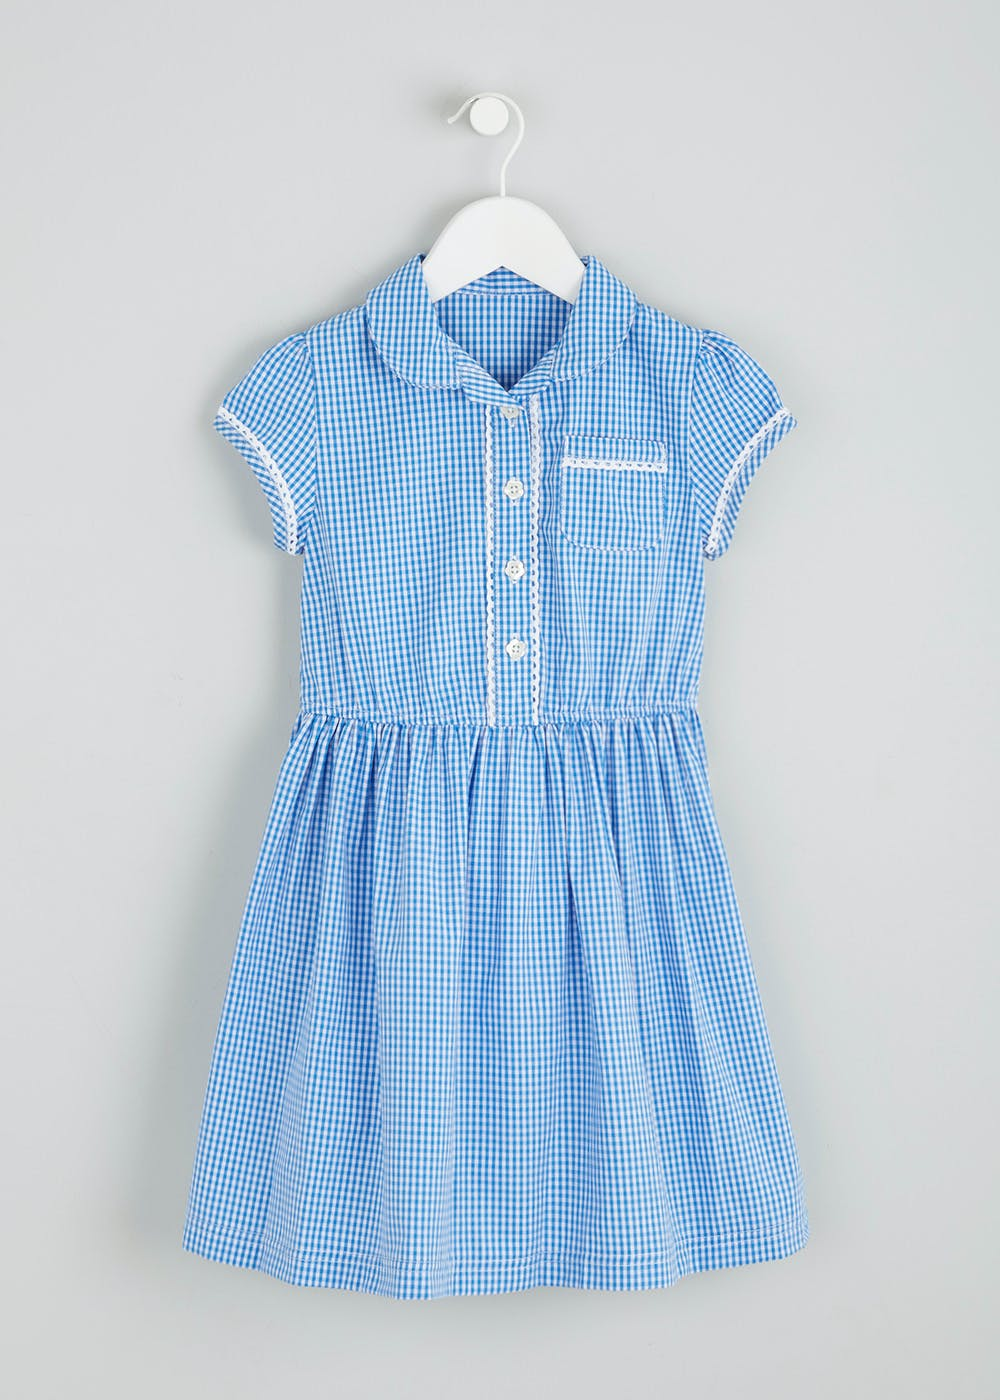 9a8182af0 Girls Gingham School Dress   Scrunchie (3-13yrs) – Blue – Matalan